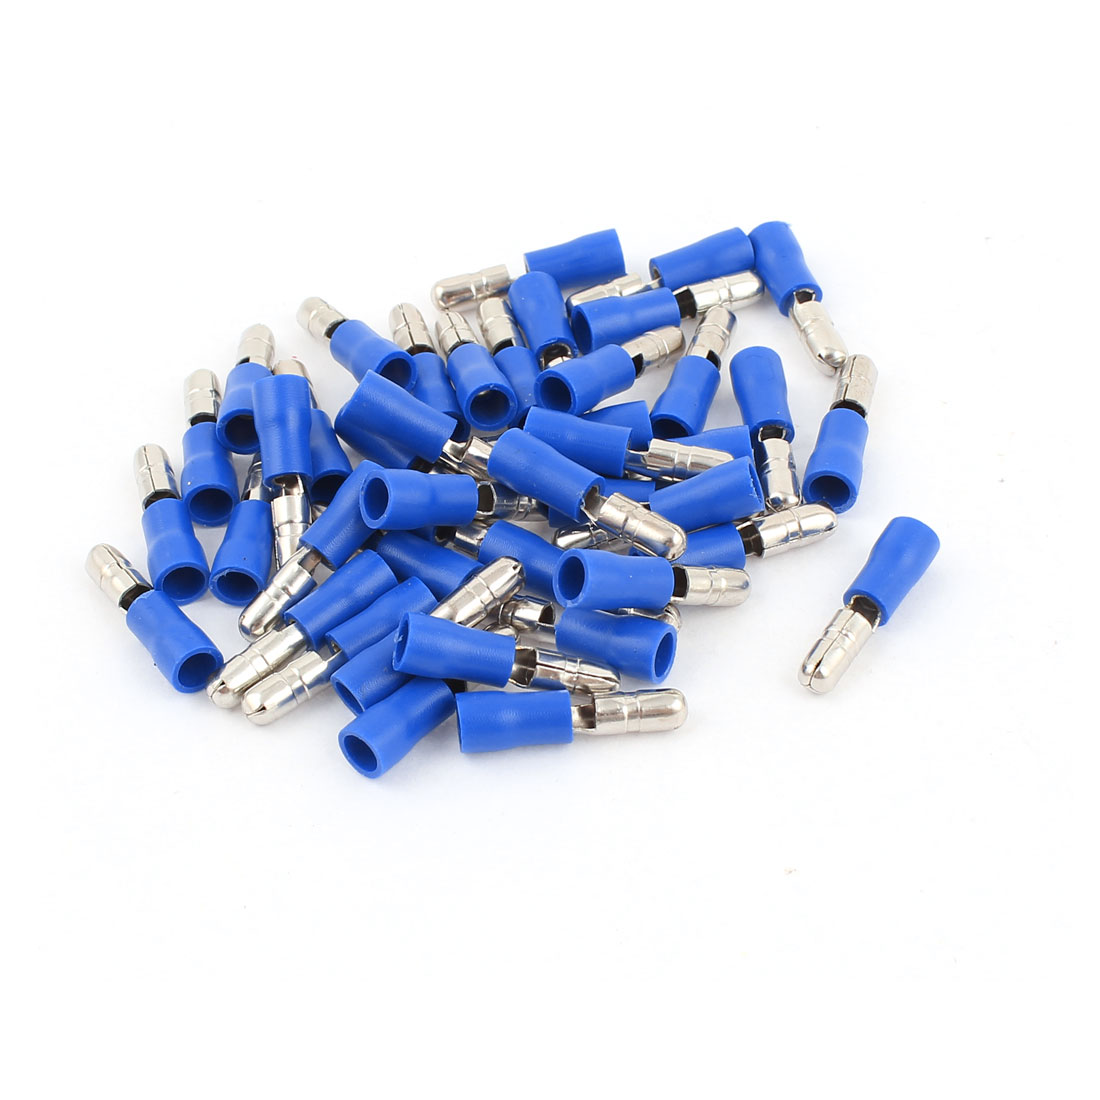 40 Pcs MPD2-156 16-14 AWG Wire Insulated Crimp Terminals Blue